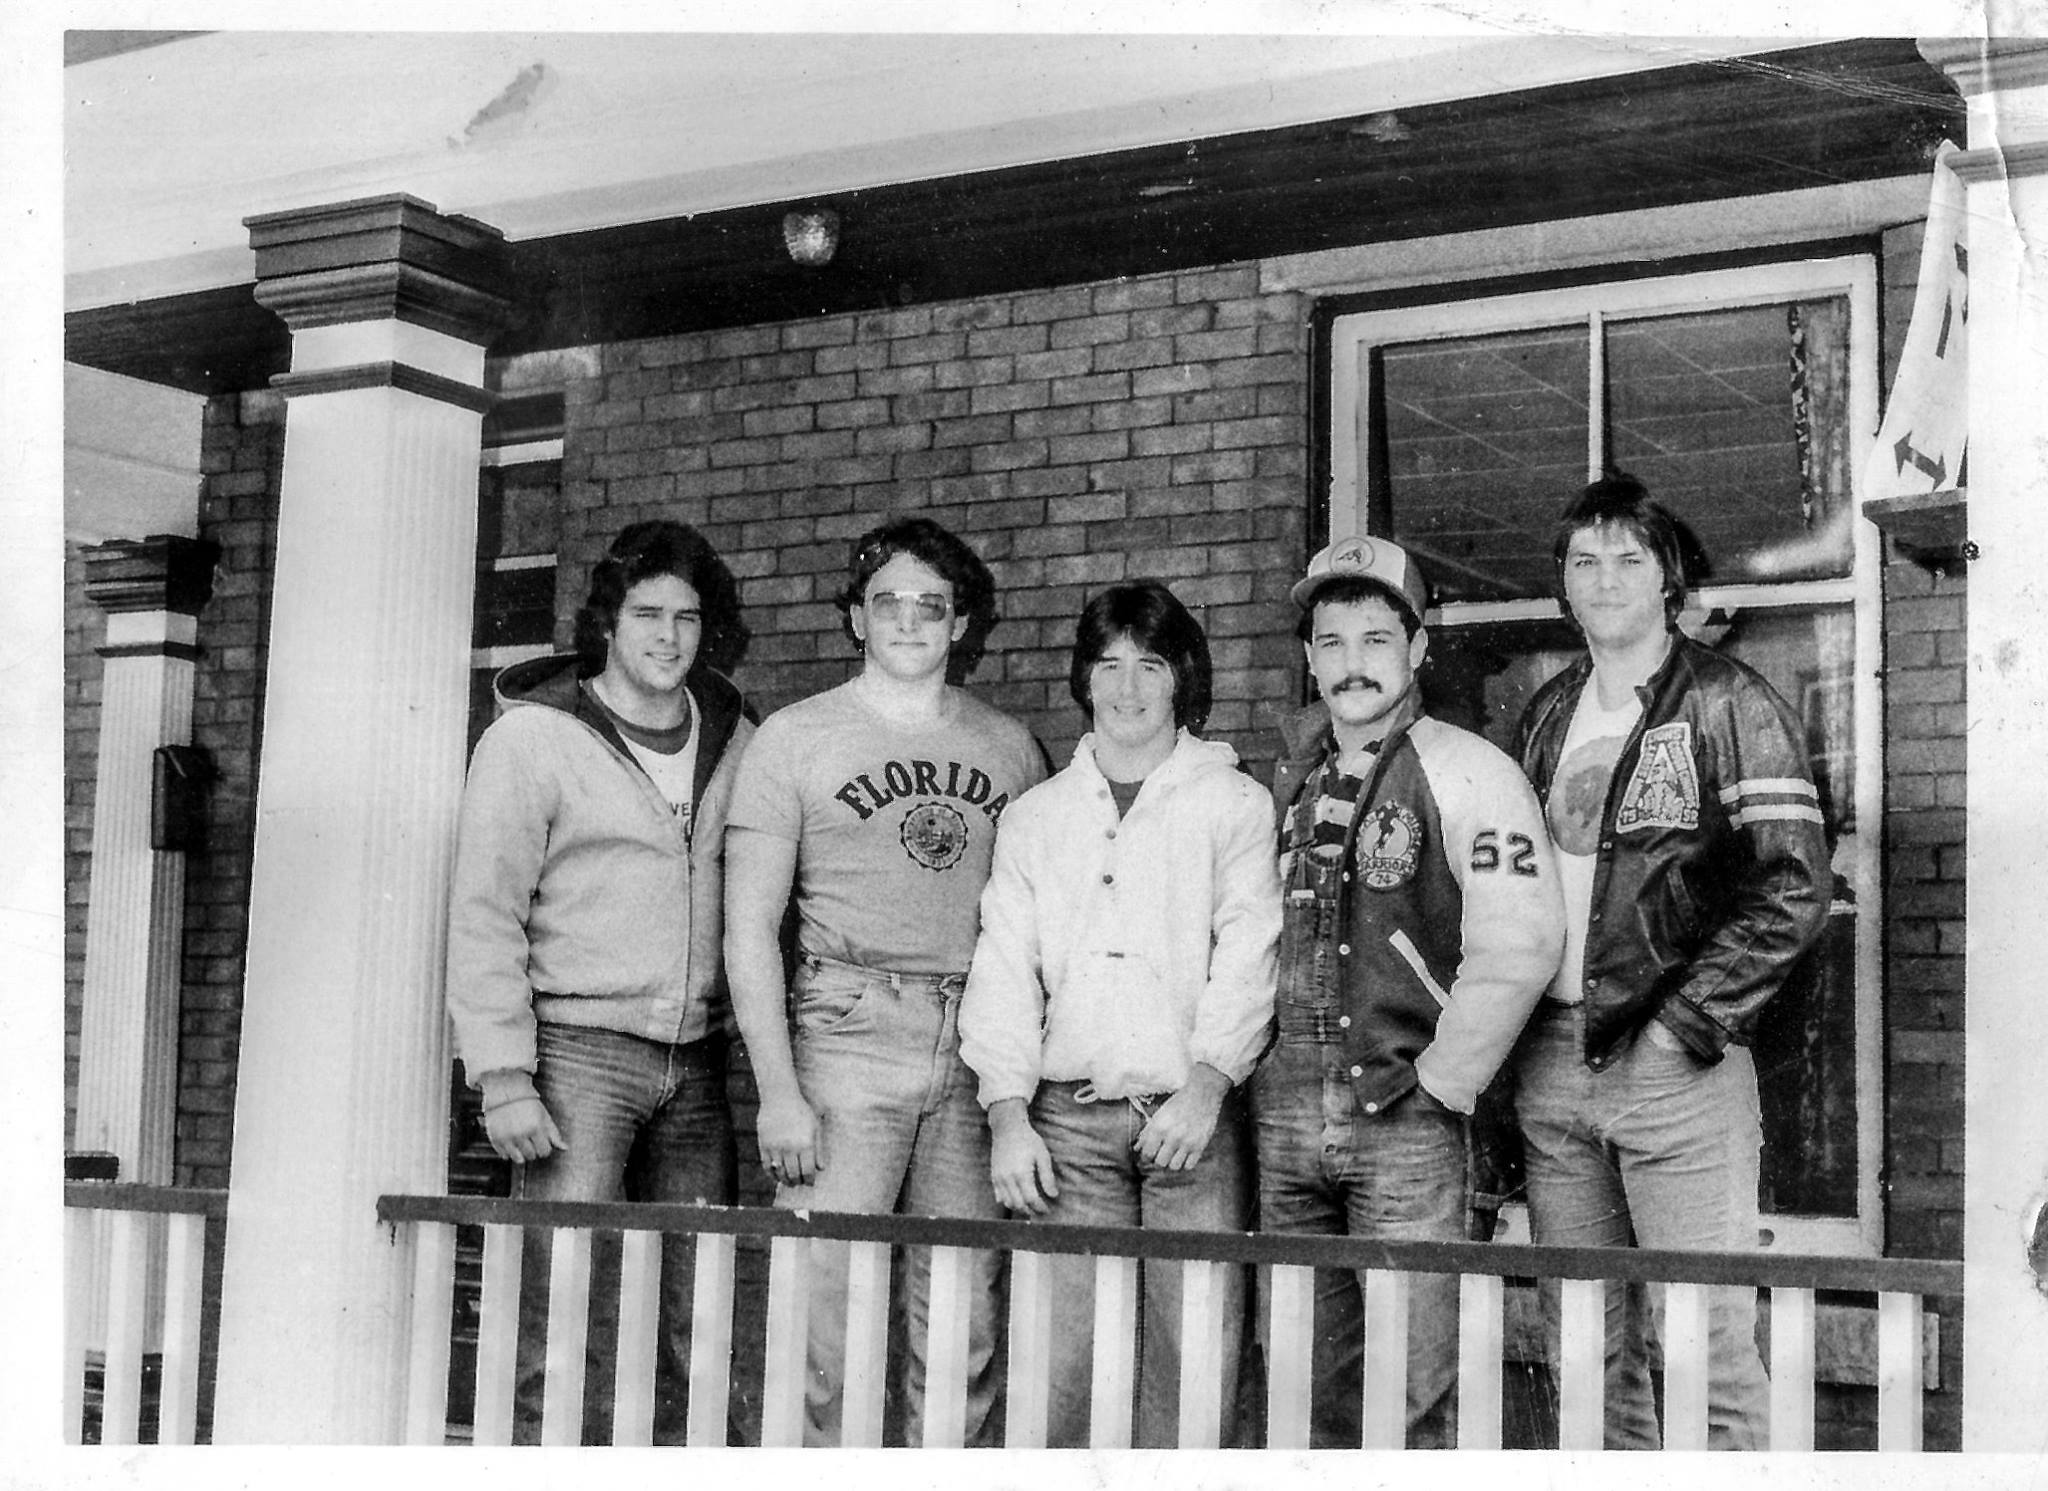 656 King Edward Avenue 1979 - the Football House - Doug Brown, John Hennessy, Rob Tallyhoe, Guilo Pettrilli, Paul Lacey